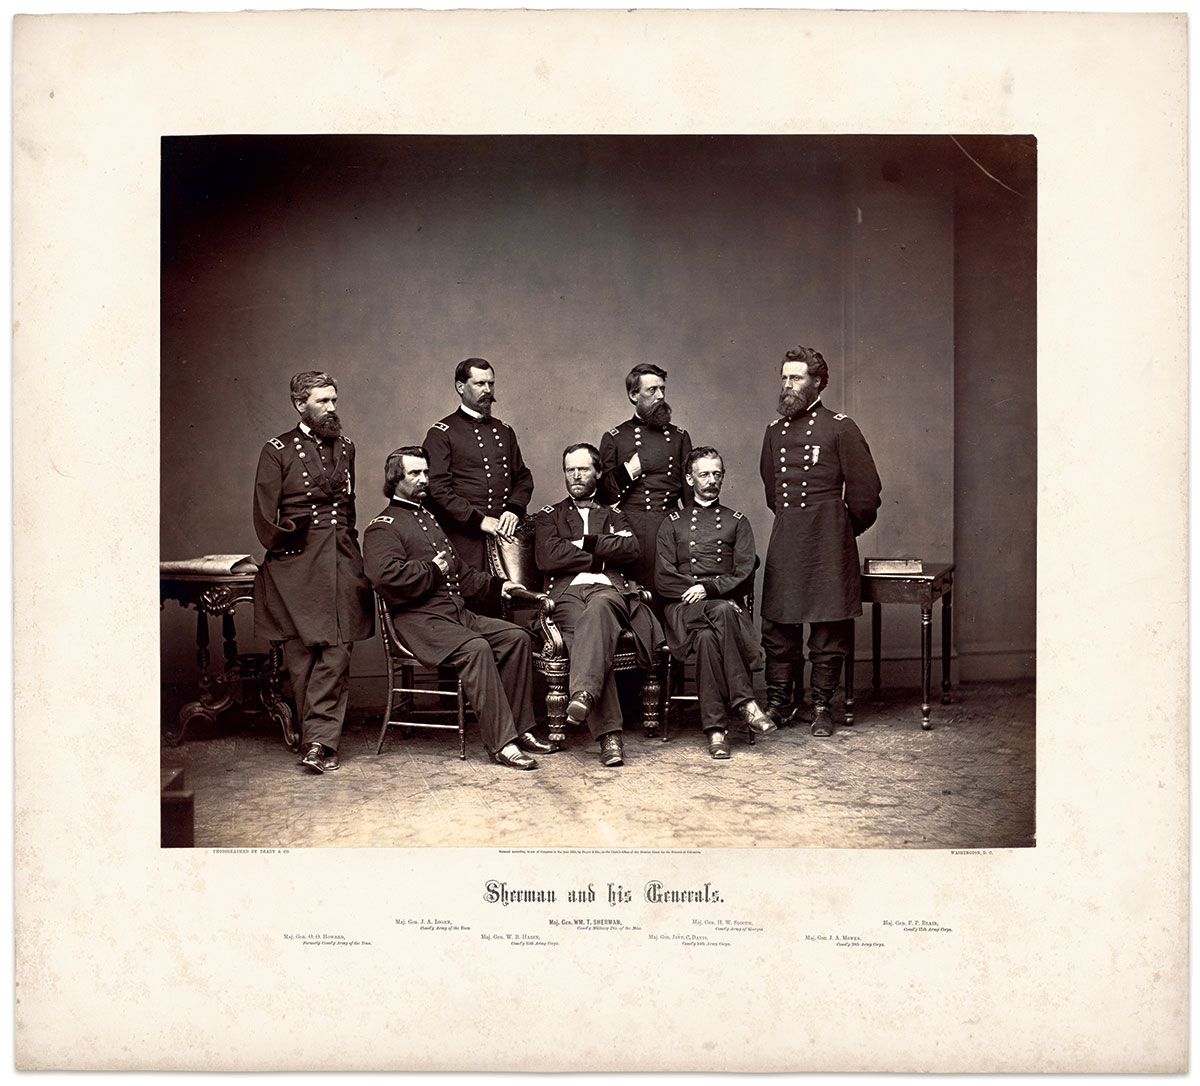 NEAR PRISTINE: This albumen of Maj. Gen. William T. Sherman and his generals soon after they played a signifcant role in ending the Southern rebellion has been spared the ravages of time which have discolored and faded many prints of the Civil War period. National Portrait Gallery.